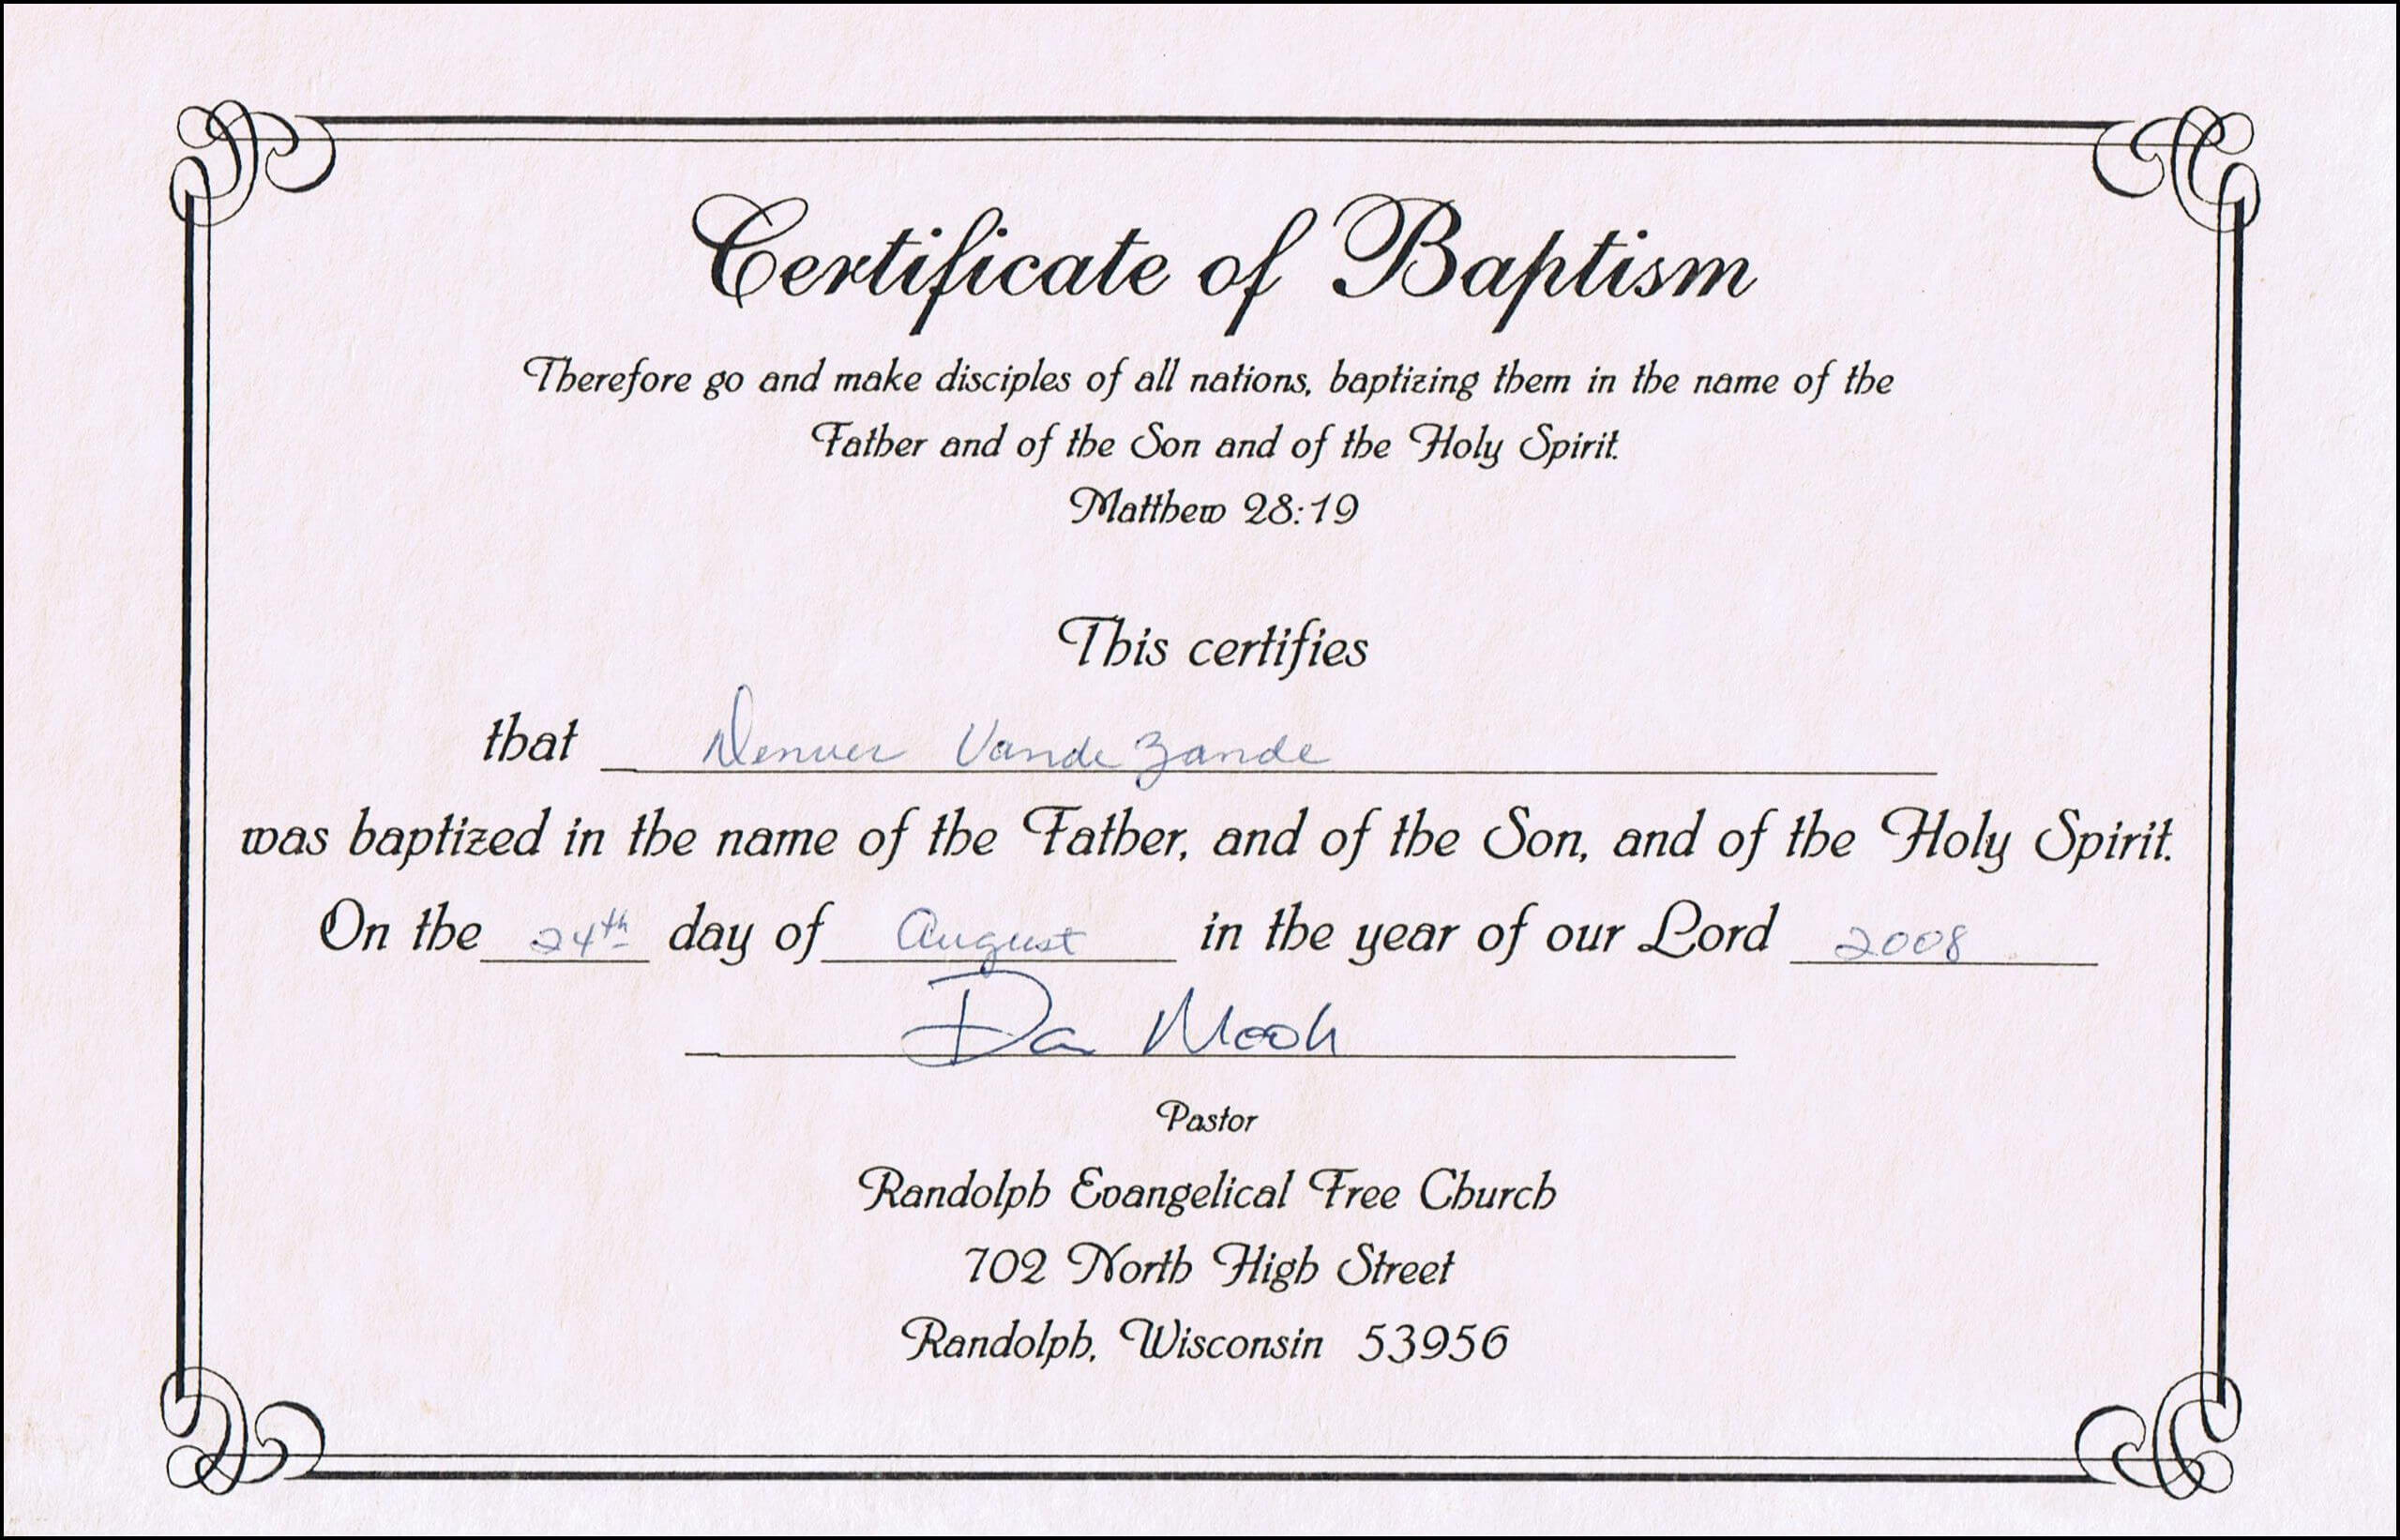 Baptism Certificate Templates For Word | Aspects Of Beauty In Baptism Certificate Template Word